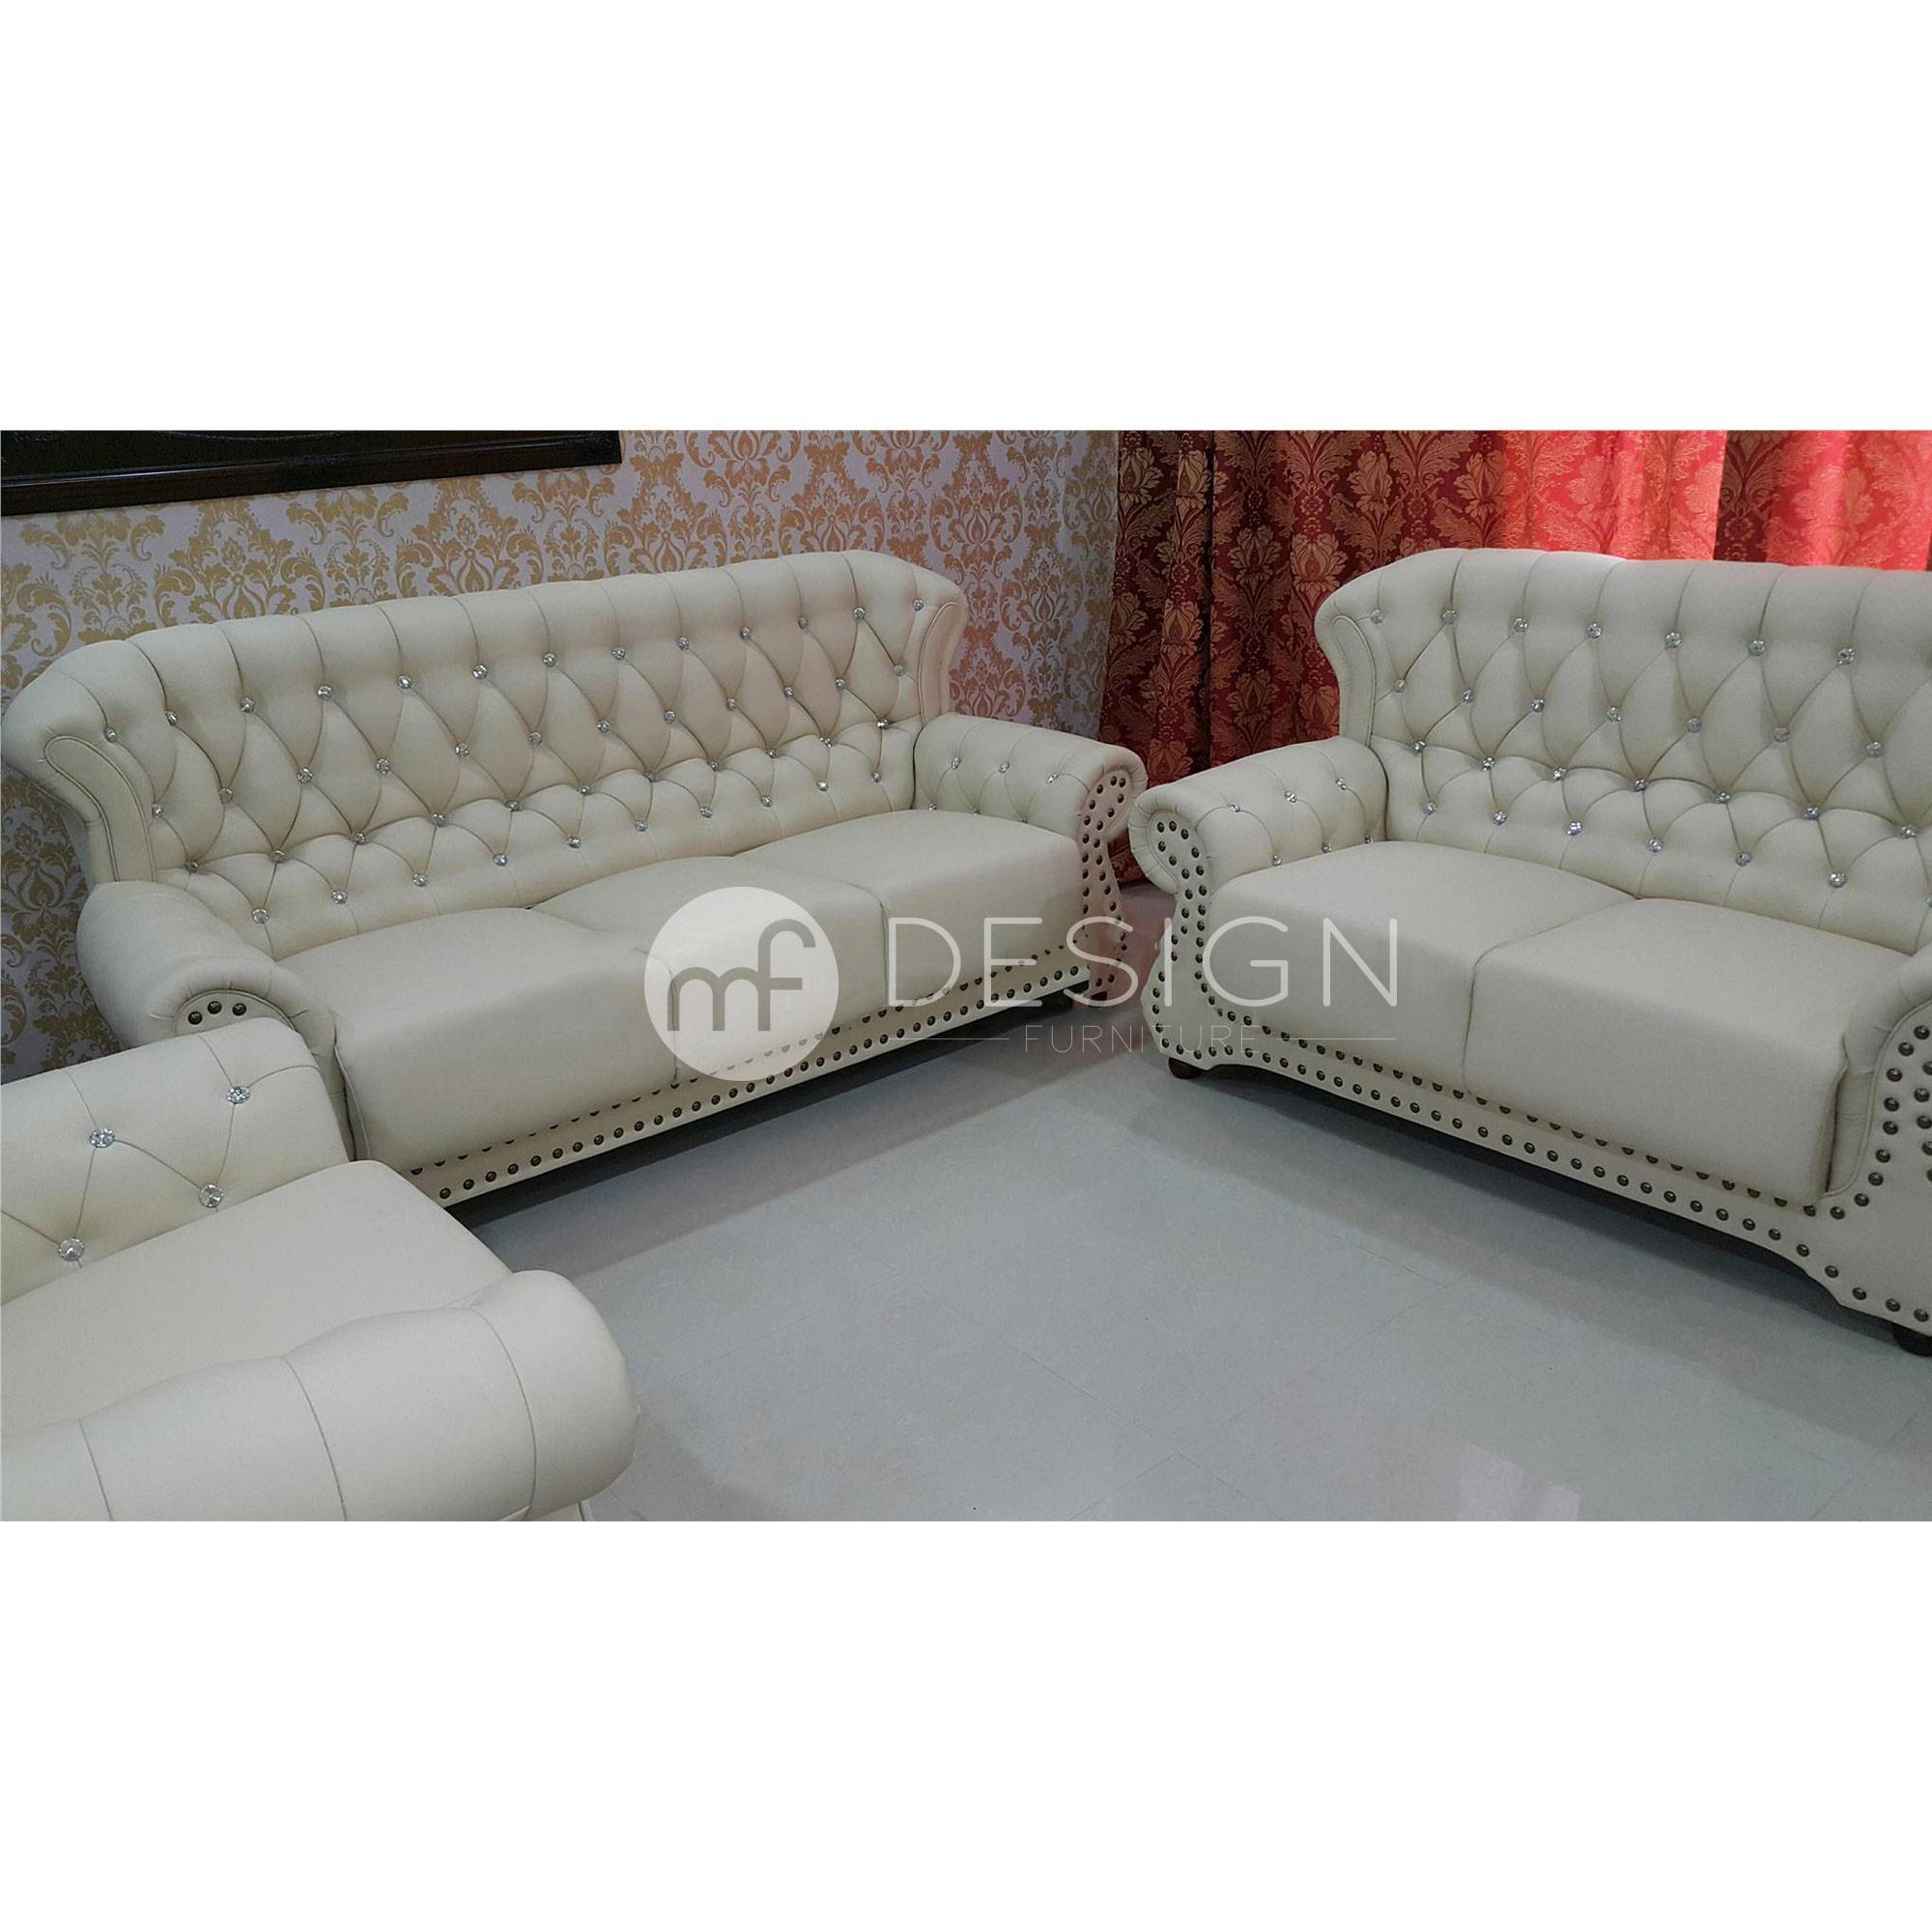 modernric size diamond of mid velvet awful recliner image century arjun modern christopher full reclineruy loveseaty fabric sectional sofa knight sofamodern milton sets design